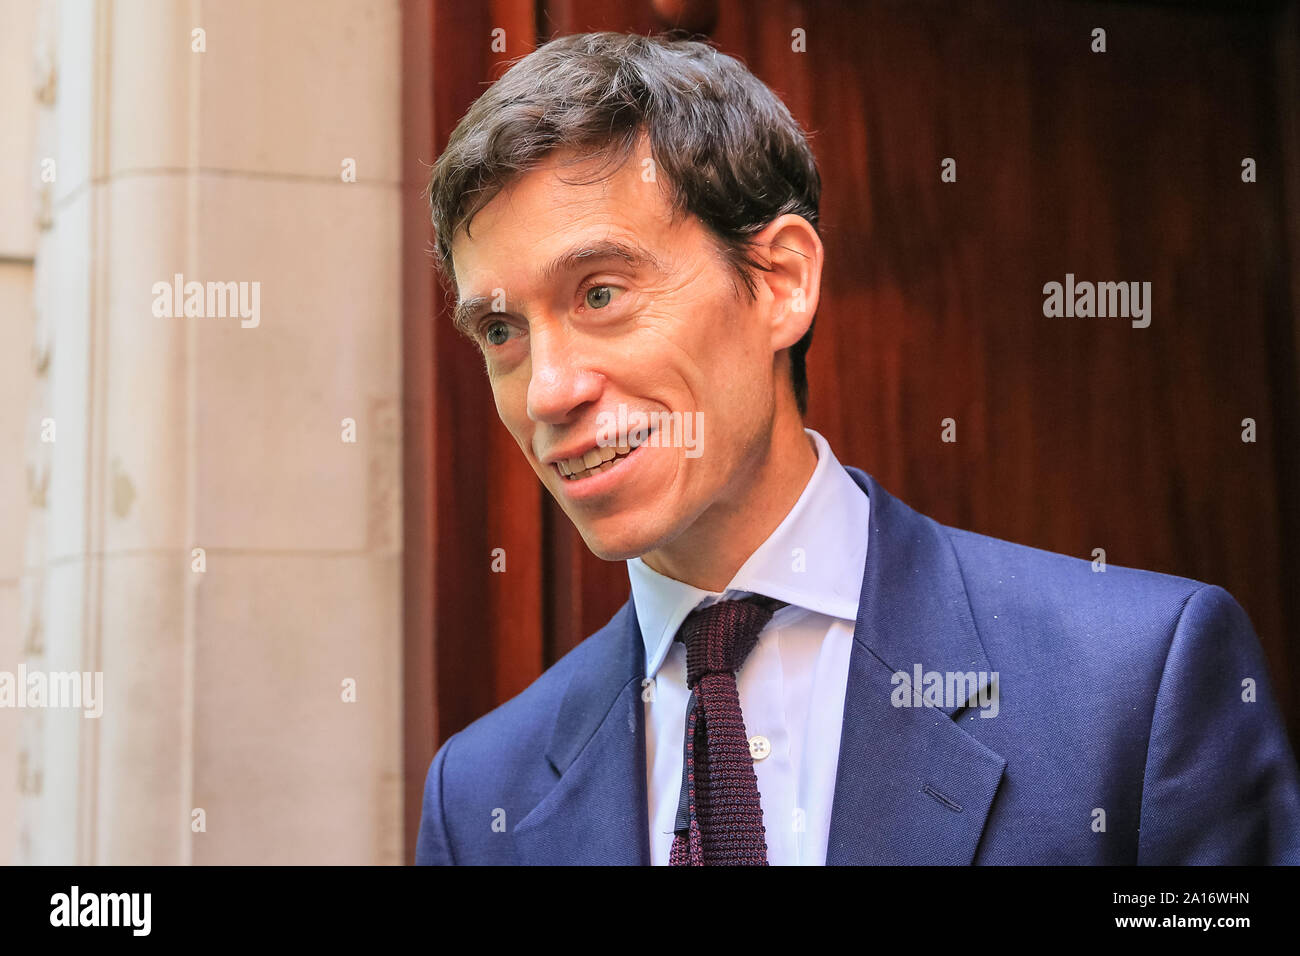 Westminster, London, UK, 24th Sep 2019. Rory Stewart, former Conservative Leadership Candidate and former Cabinet Minister, who had the whip withdrawn by Boris Johnson.  Politicians and commentators from all parties are in high demand around Millbank Studios, College Green and the court building to comment on today's judgement. Credit: Imageplotter/Alamy Live News Stock Photo